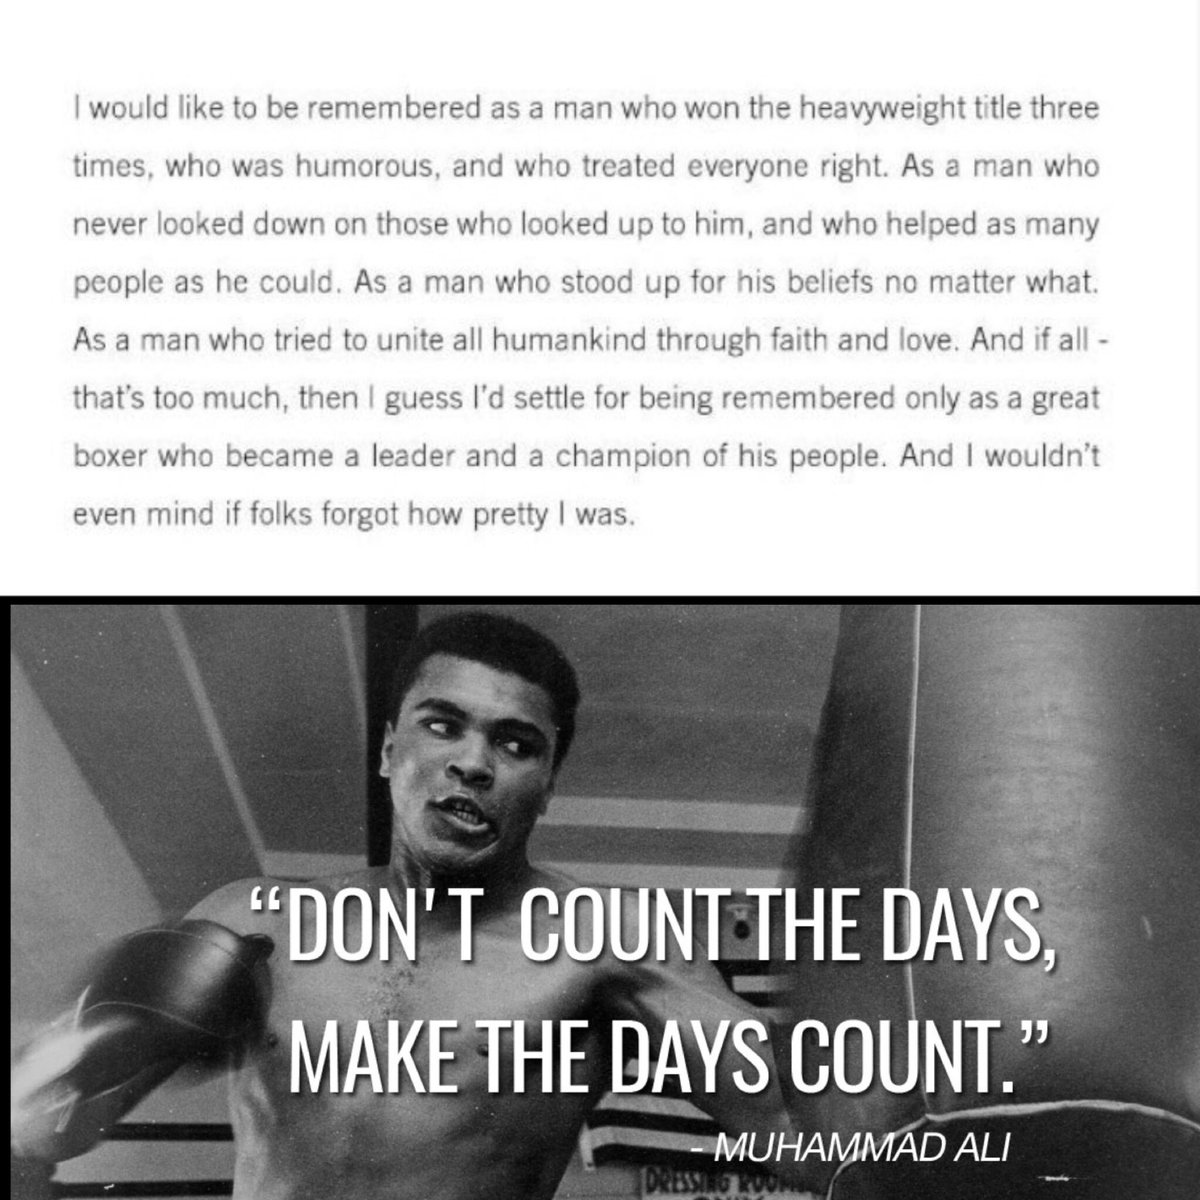 #MuhammadAli thank you for inspiring us with your life. https://t.co/y9qzSZiE8o